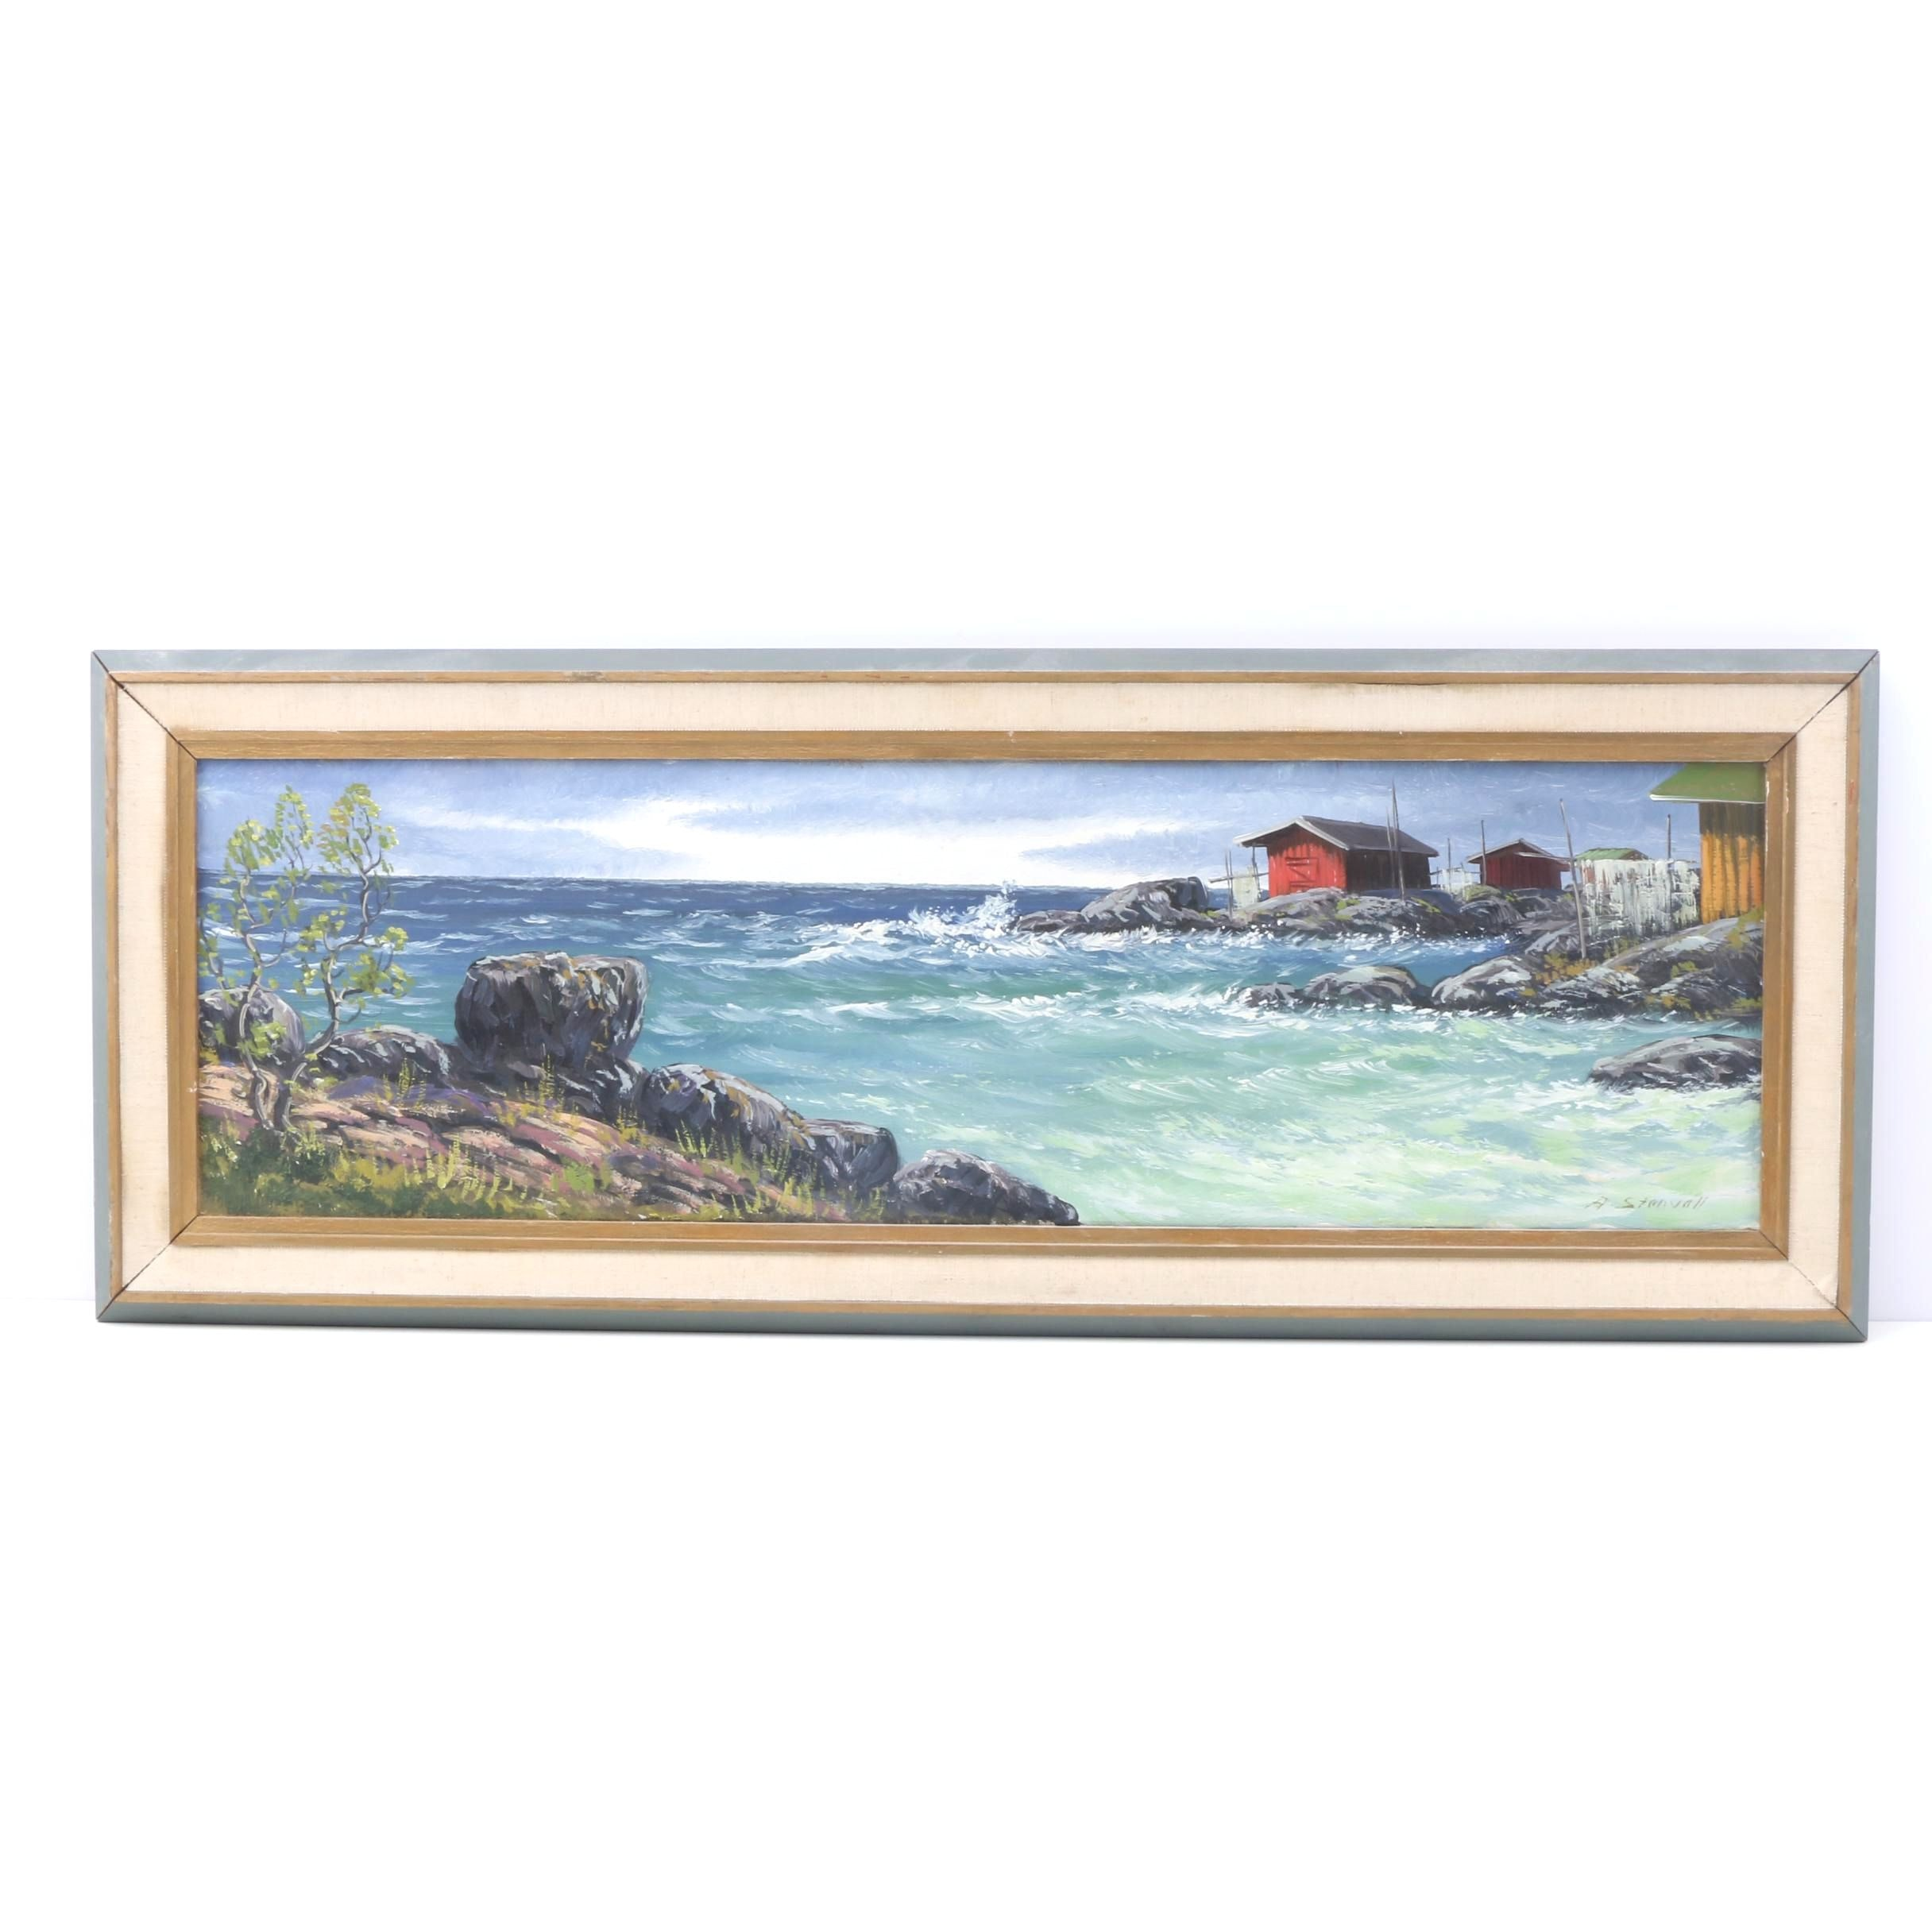 A. Stenvall Oil on Canvas Painting of Seaside Shacks